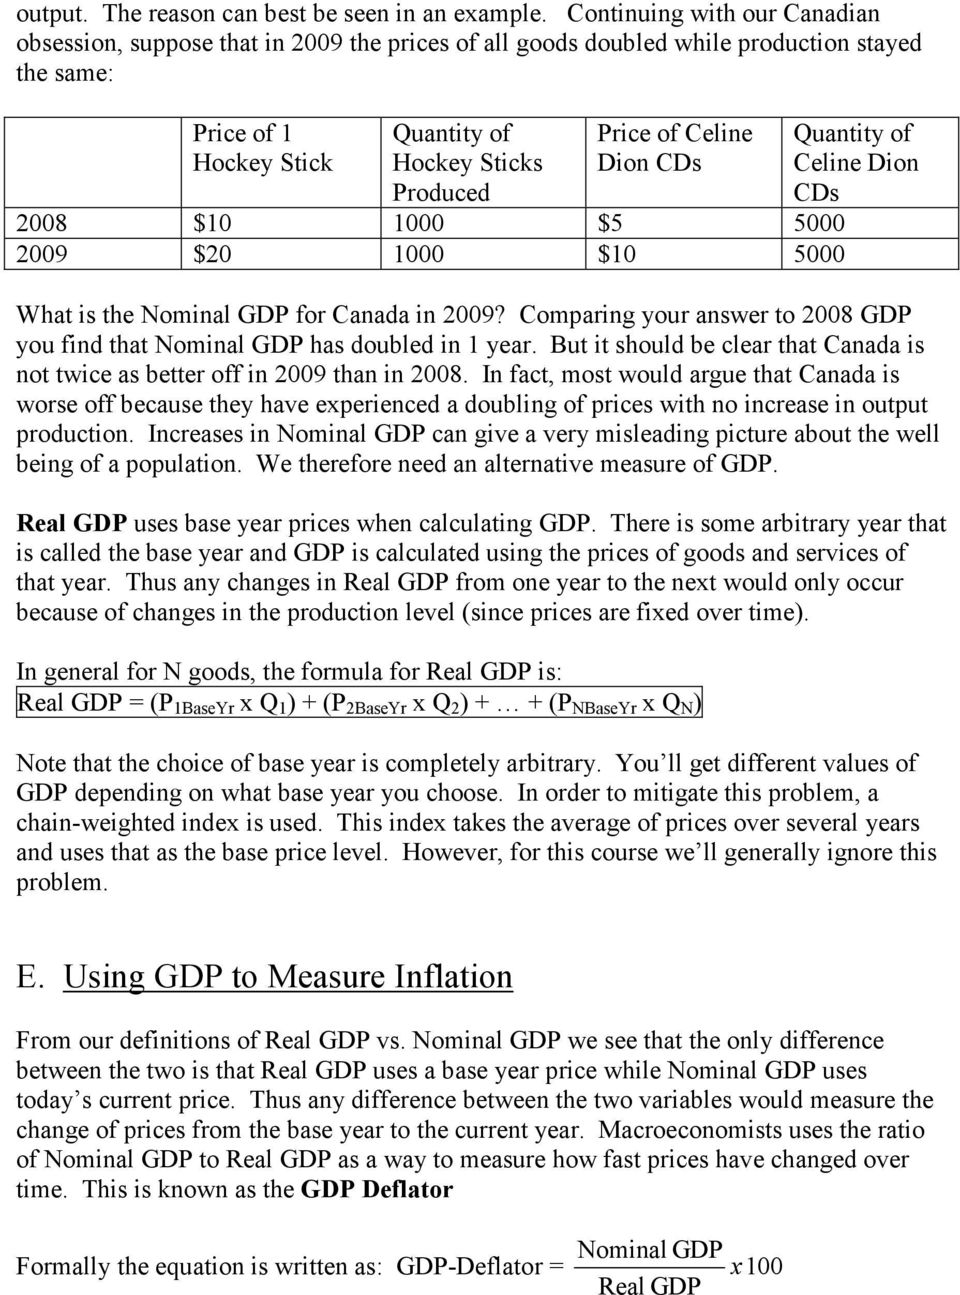 2008 $10 1000 $5 5000 2009 $20 1000 $10 5000 Celine Dion CDs What is the Nominal GDP for Canada in 2009? Comparing your answer to 2008 GDP you find that Nominal GDP has doubled in 1 year.